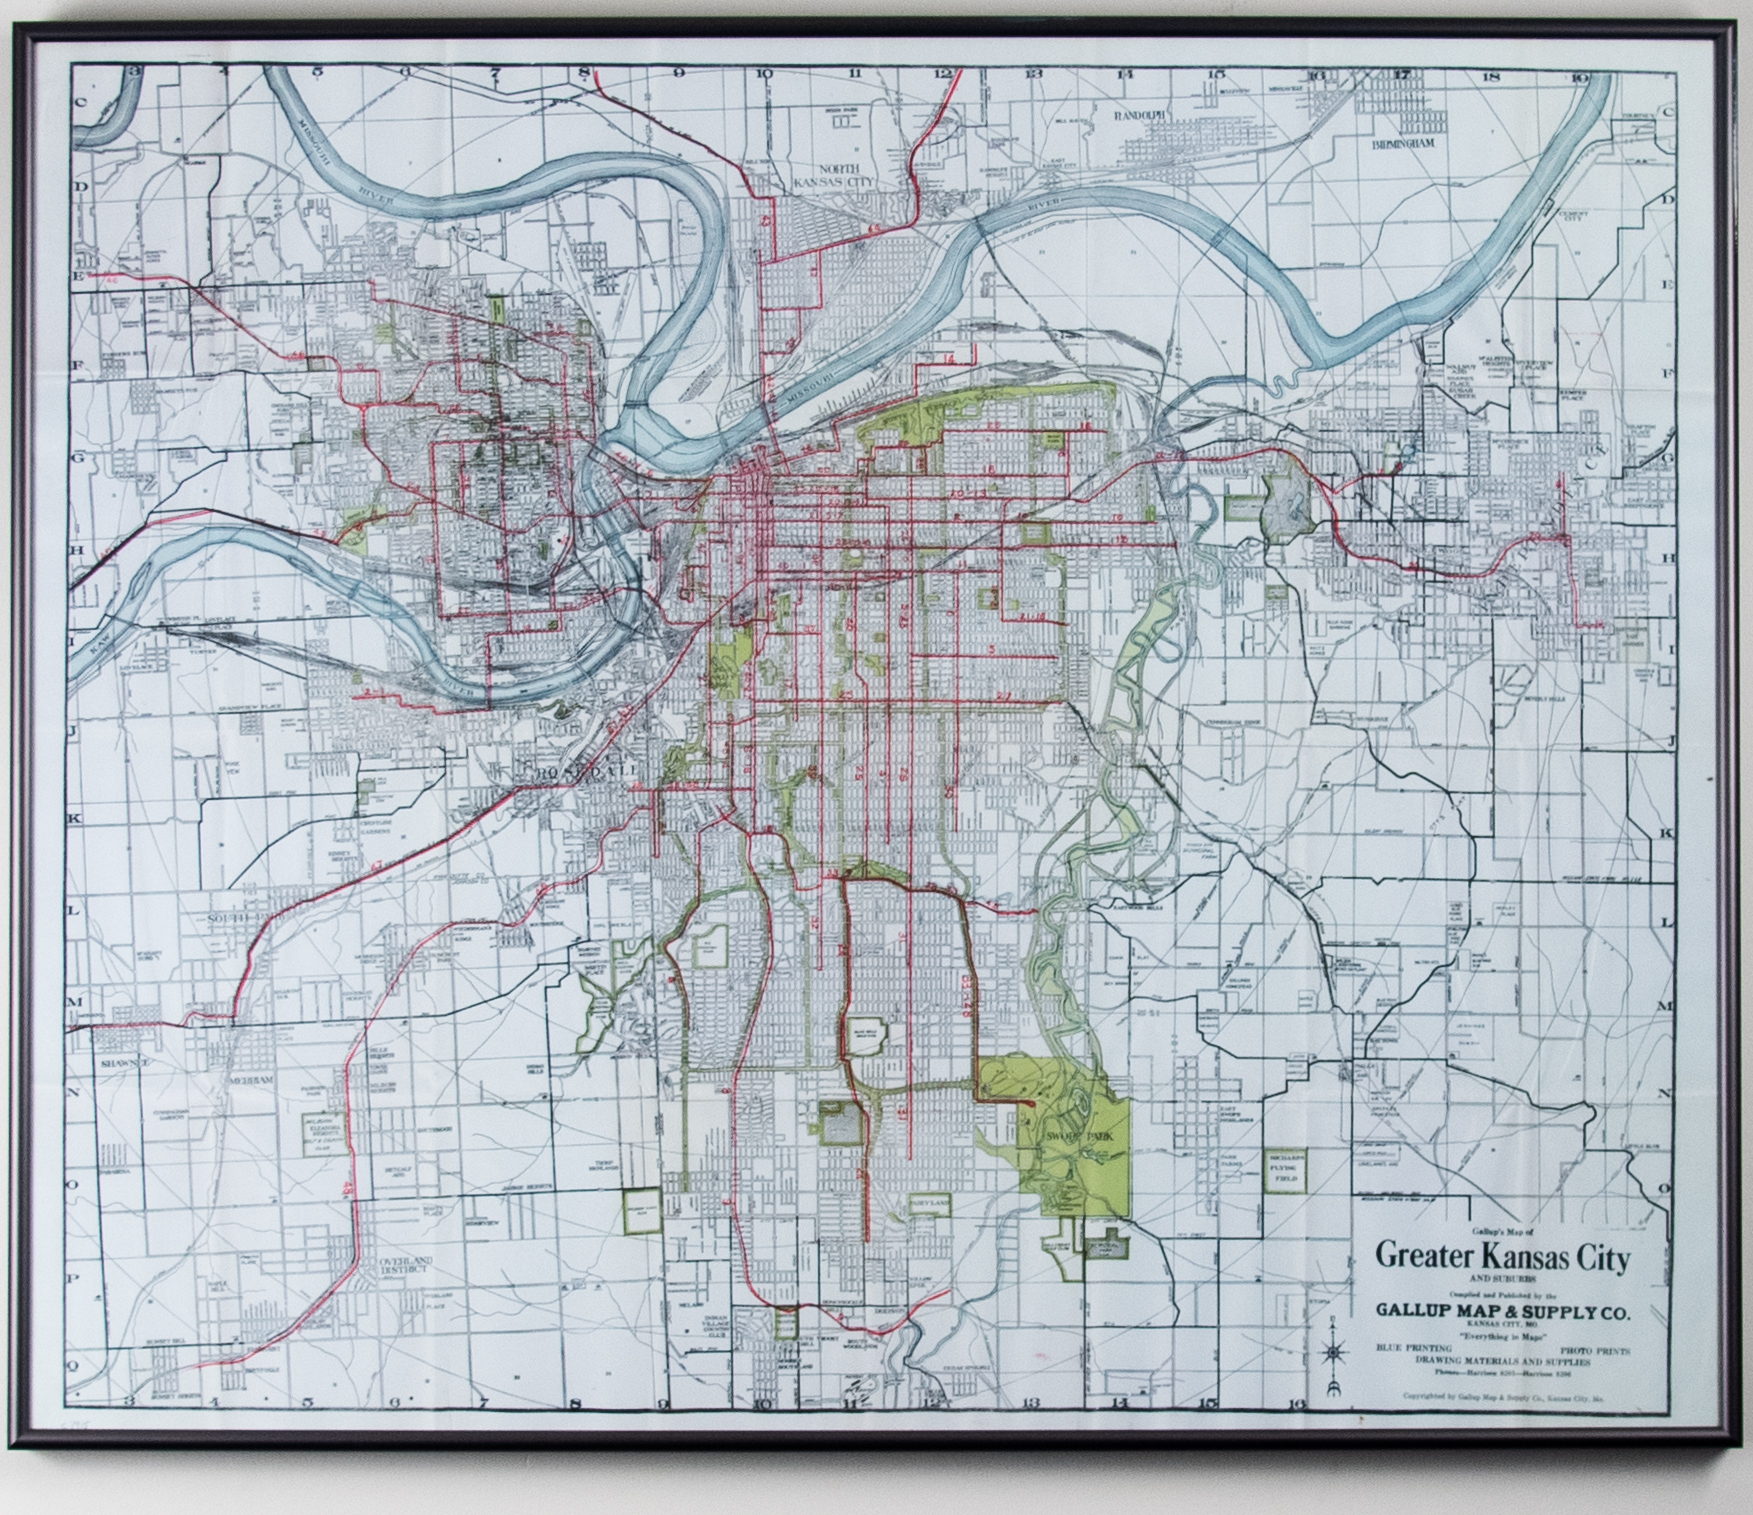 Map of Greater Kansas City & Suburbs | Kansas City Public Library